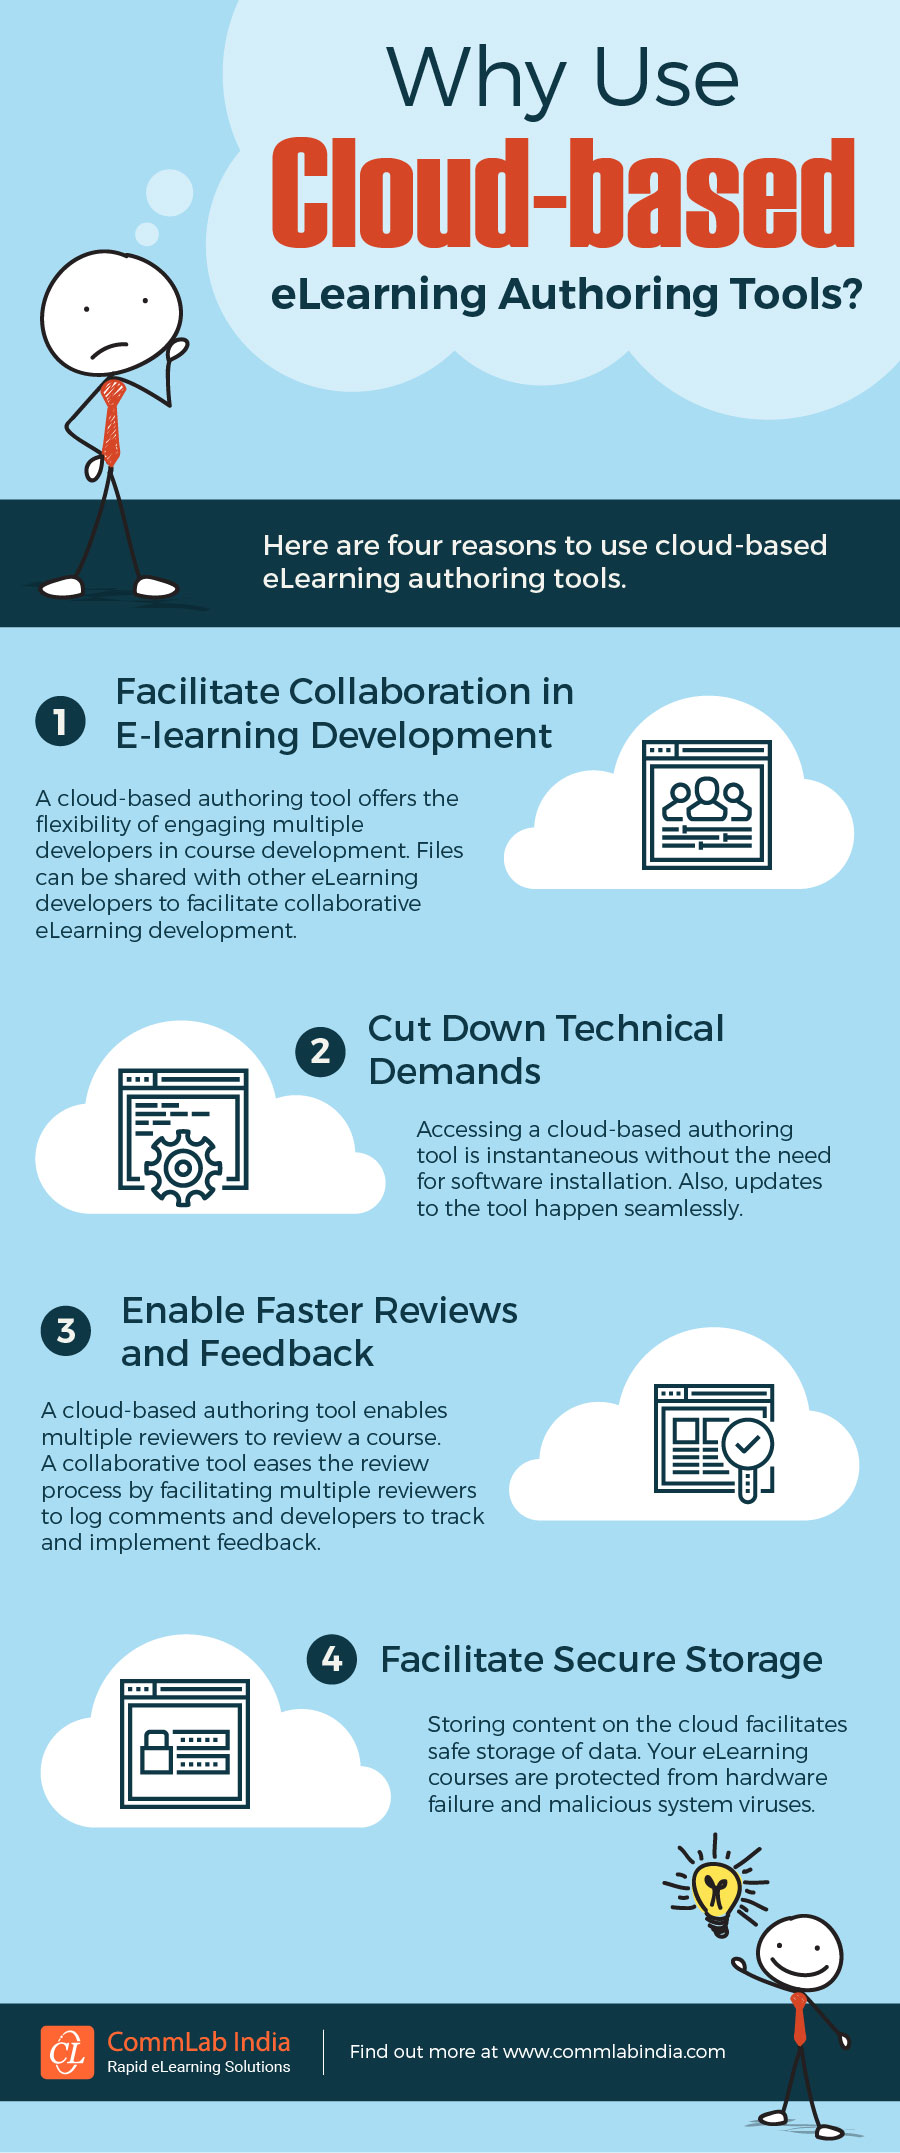 Why Use Cloud-based eLearning Authoring Tools? [Infographic]